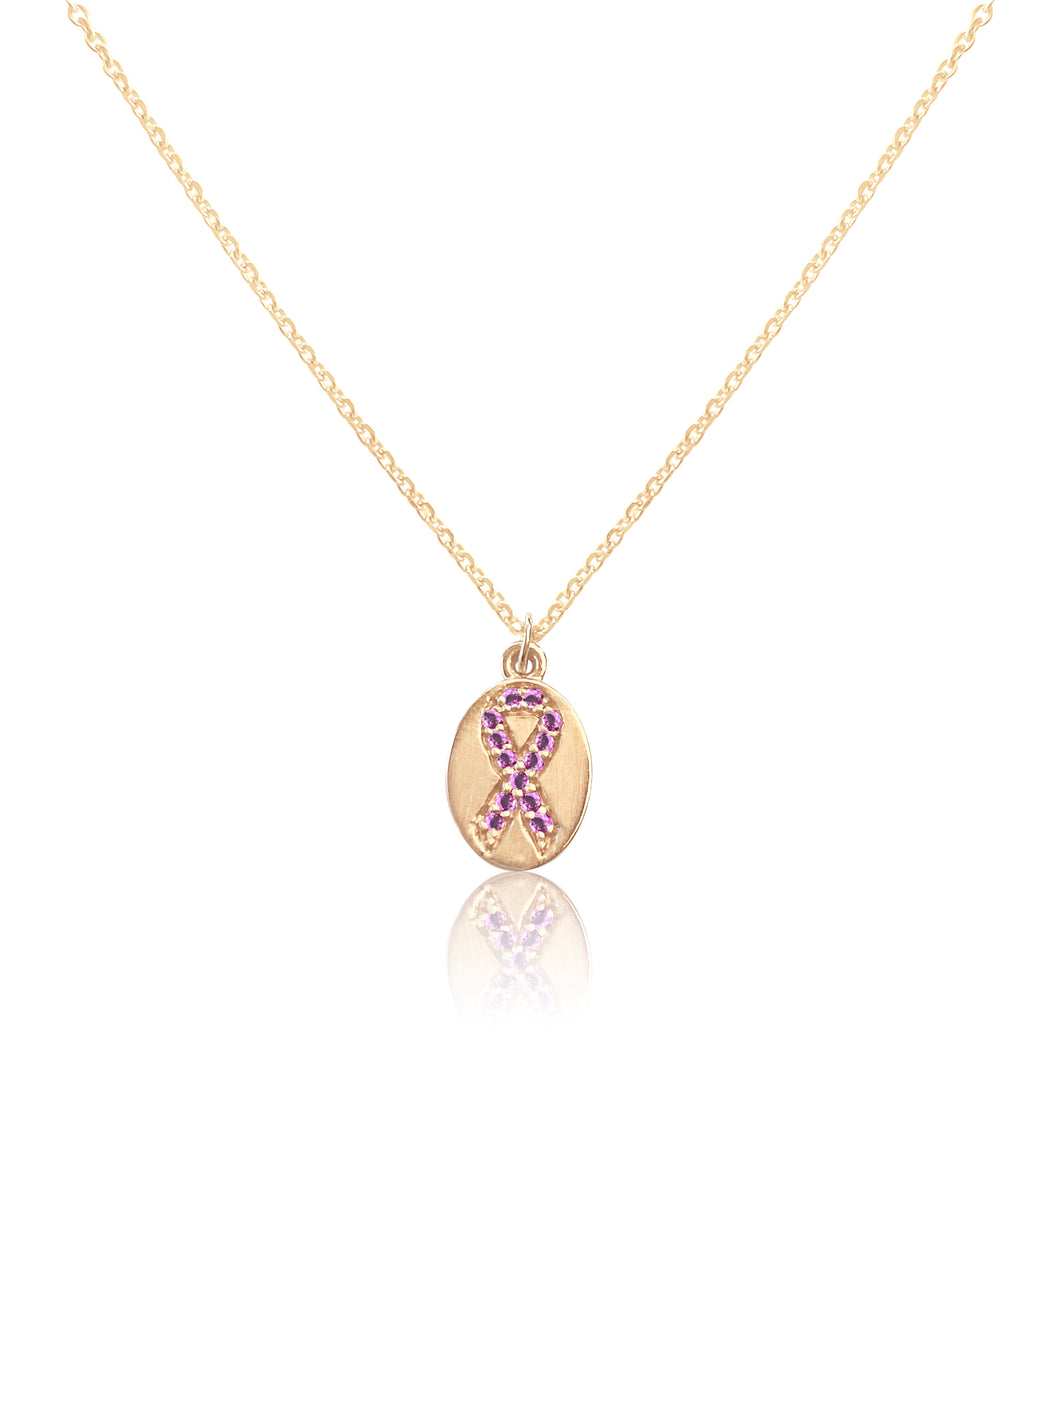 14k Diamond/Sapphire Awareness Ribbon Necklace With Back Engraving